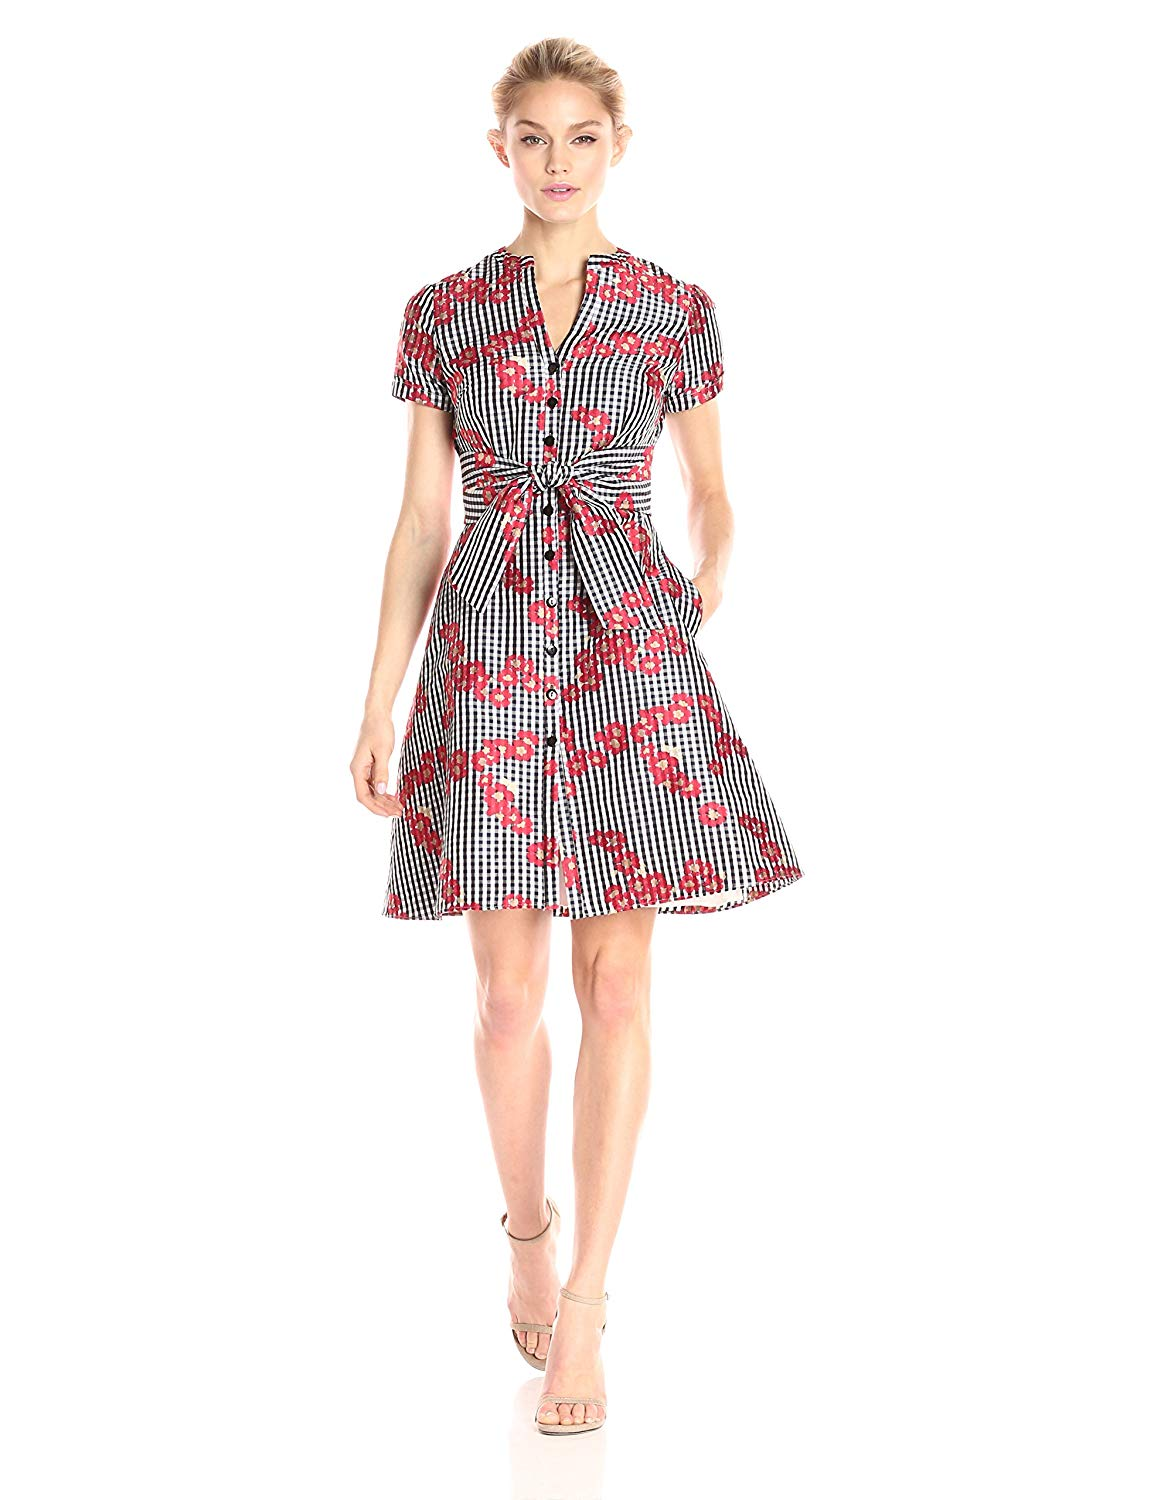 743b23087f3 Adrianna Papell Women s Gingham and Floral Flared Embroidered Shirt Dress